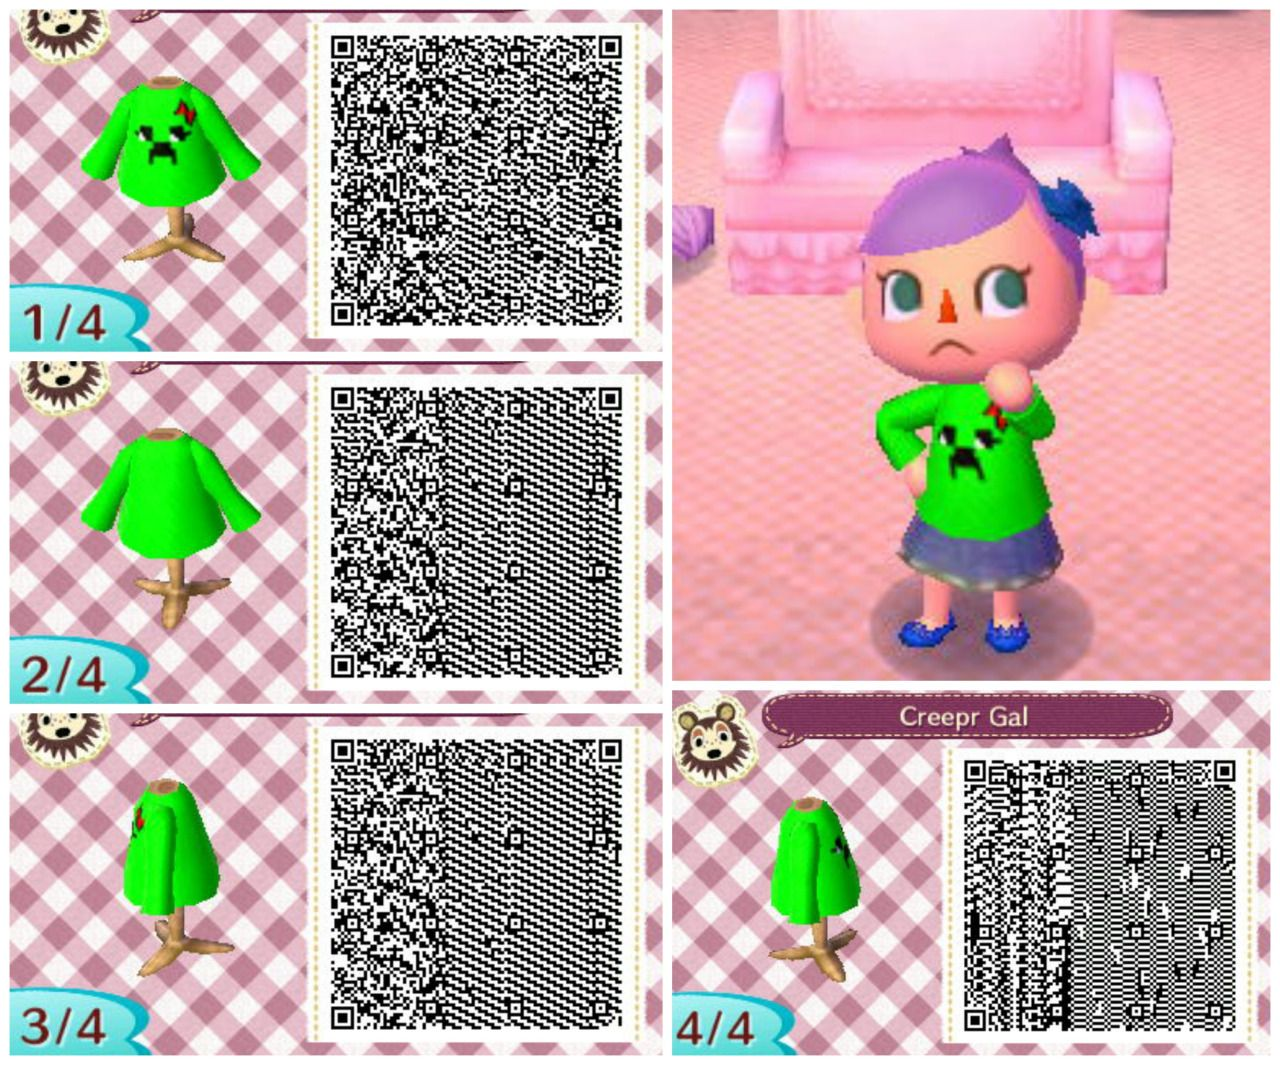 20 Animal Crossing Qr Maker Pictures And Ideas On Meta Networks